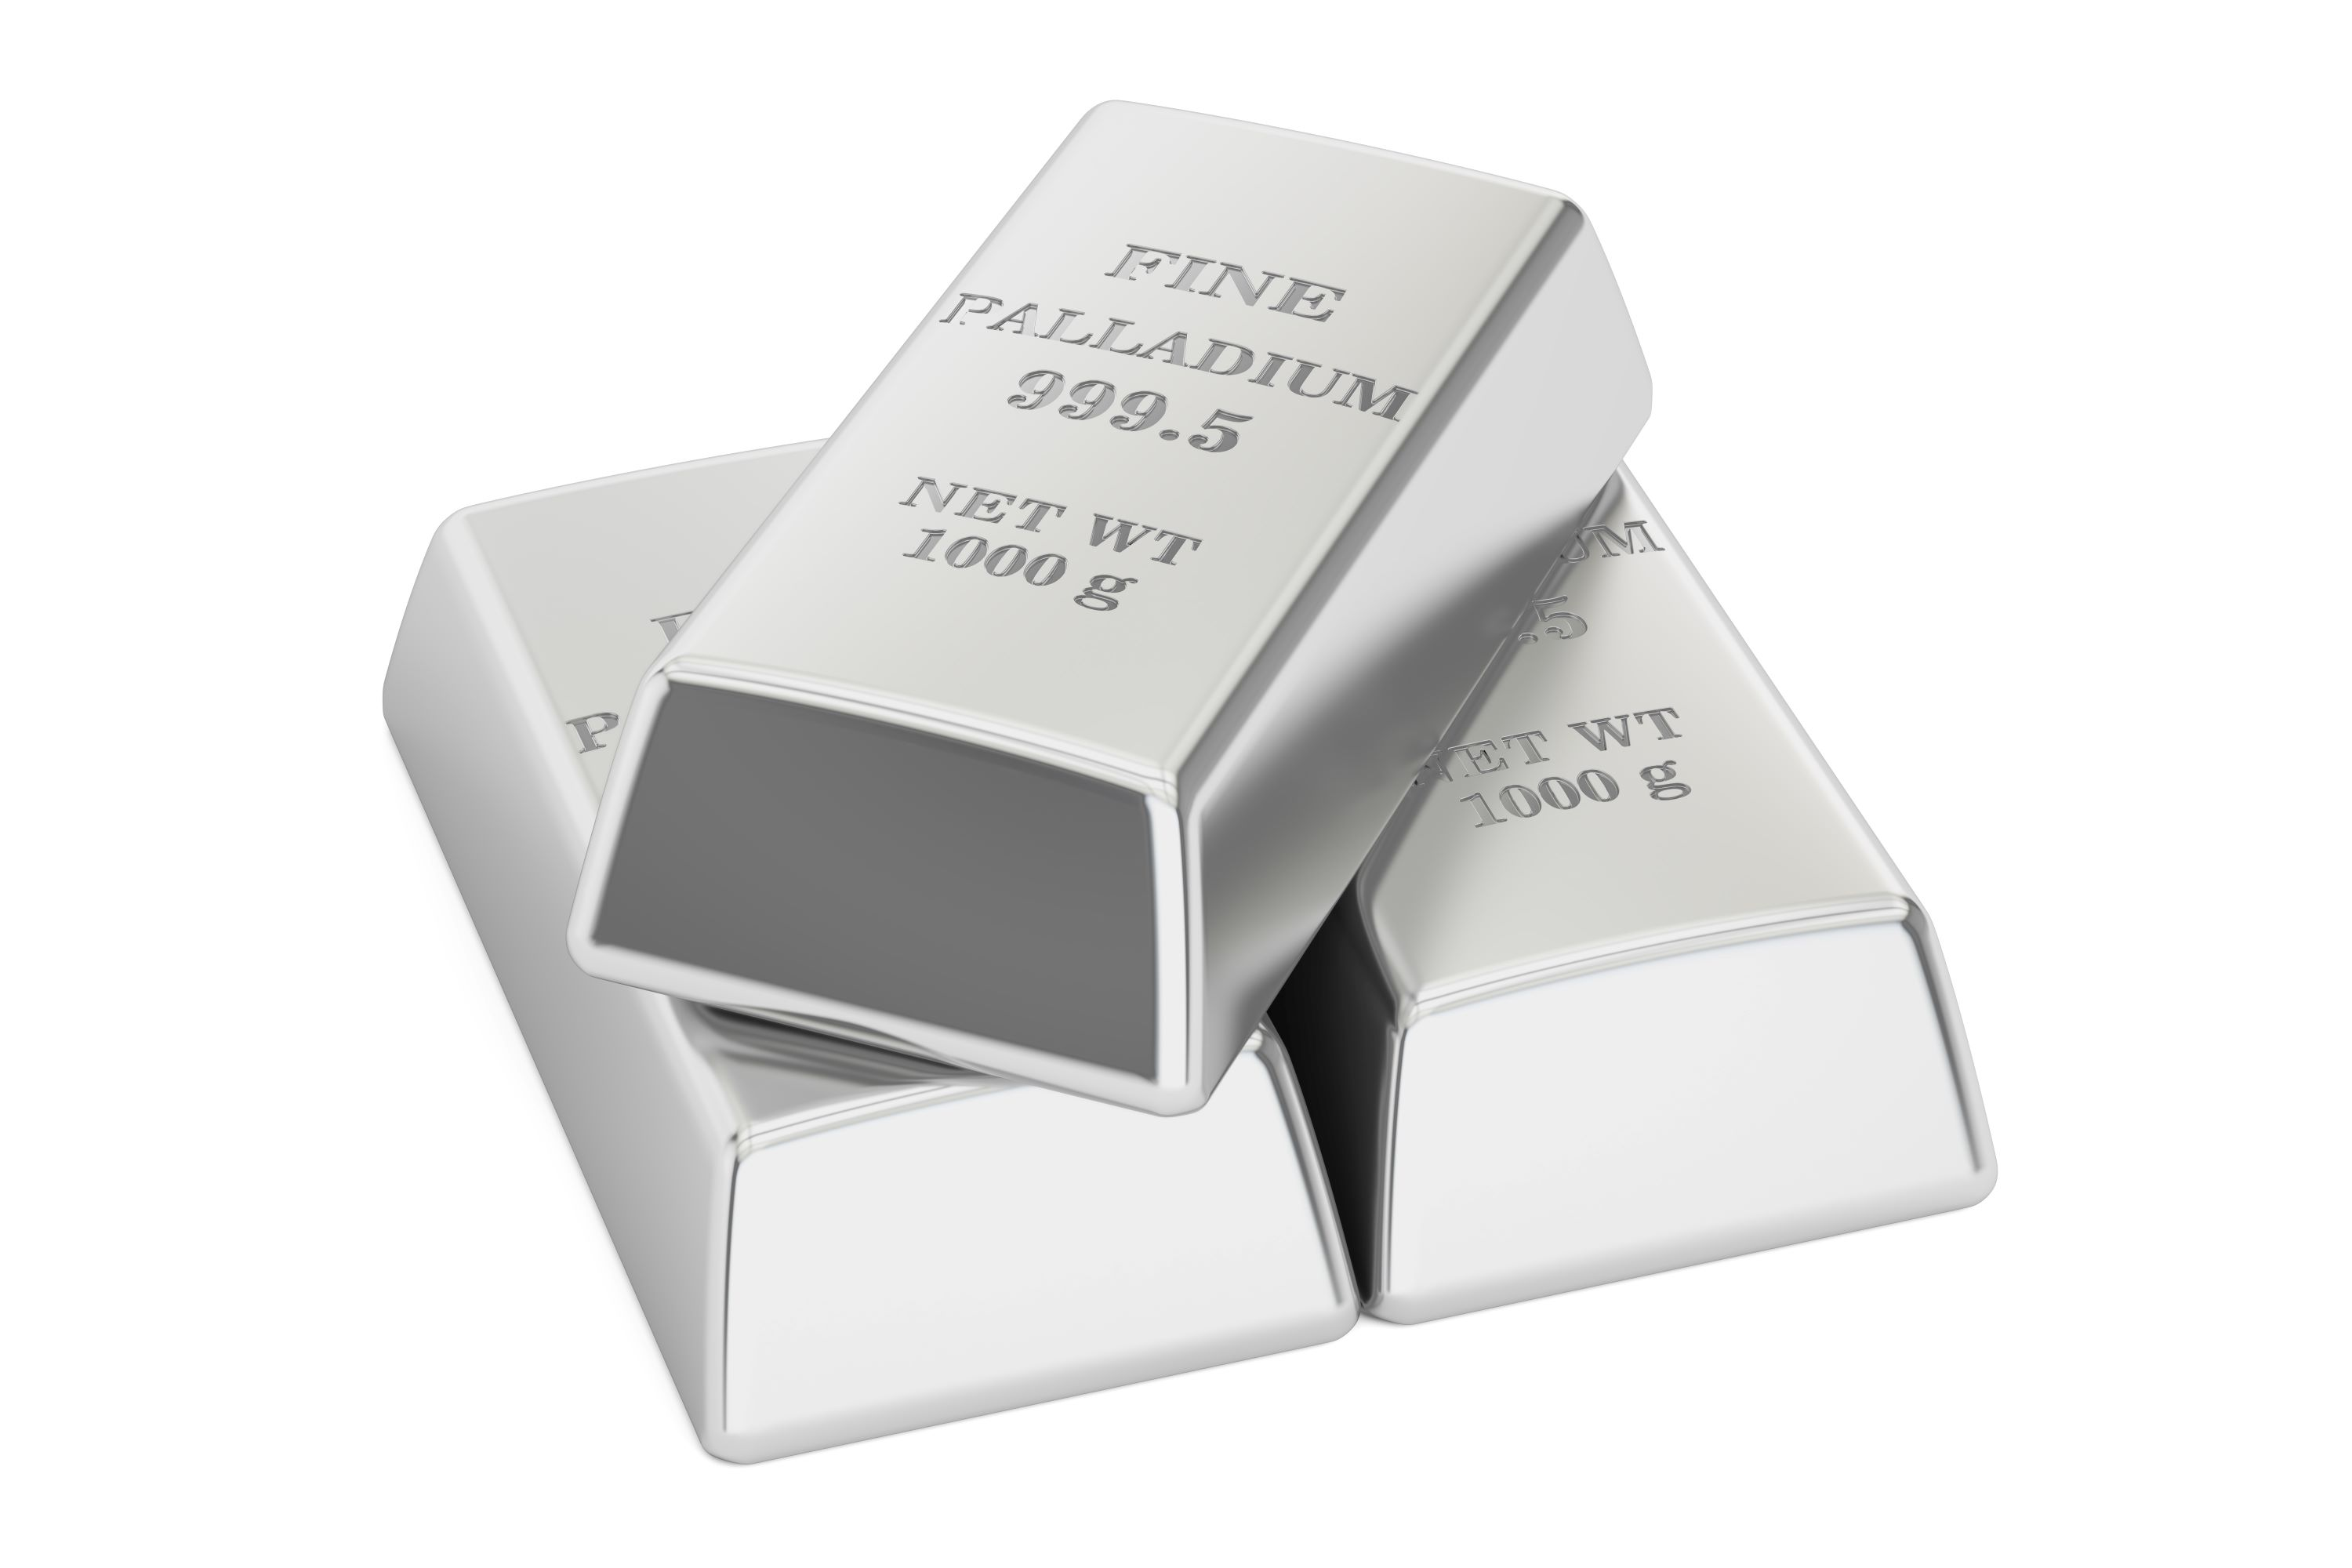 Palladium bullion bars